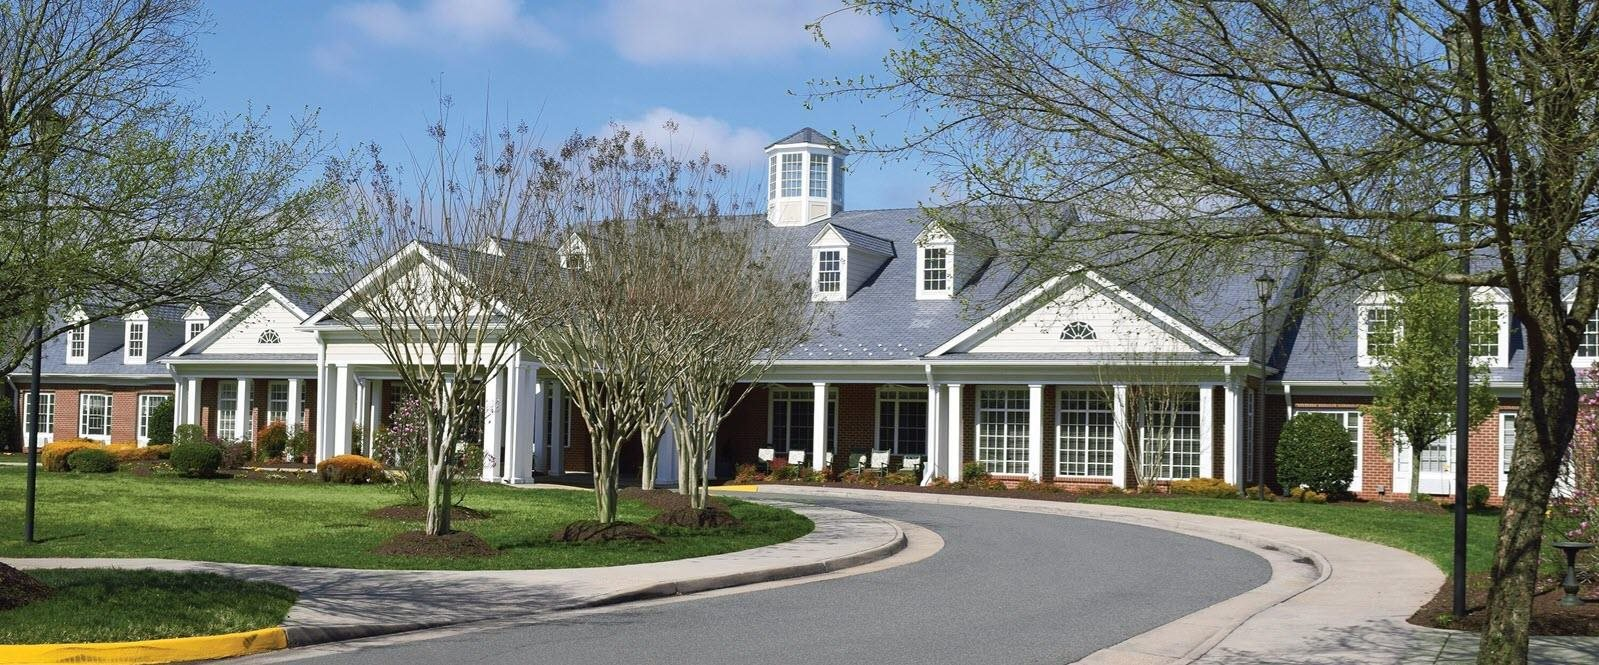 Elegant Exterior View Of Property at Spring Arbor of Salisbury, Midlothian, VA, 23113